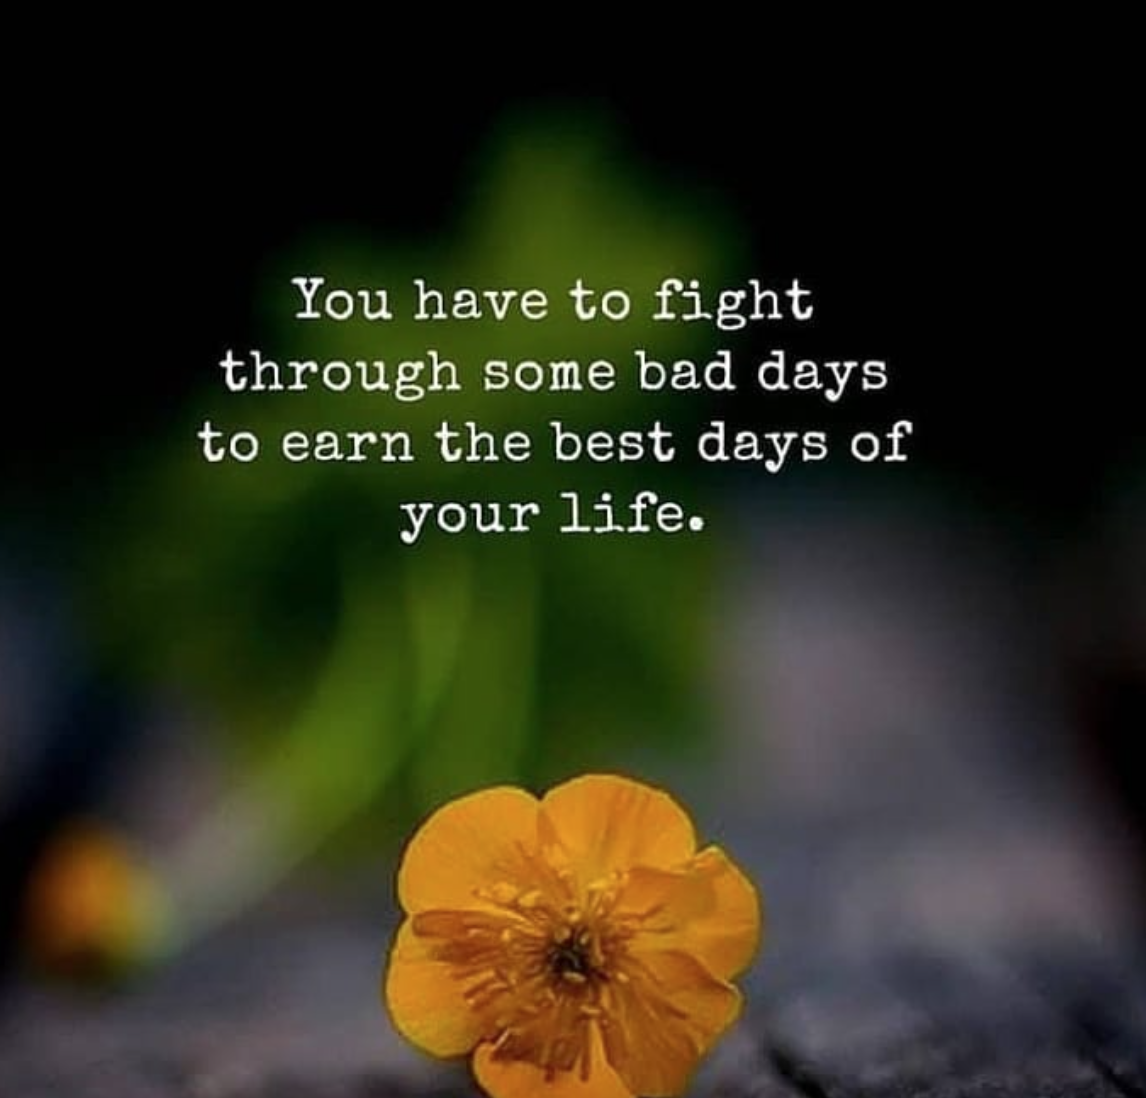 [Image] You have to fight through some bad days to earn the best days of your life.